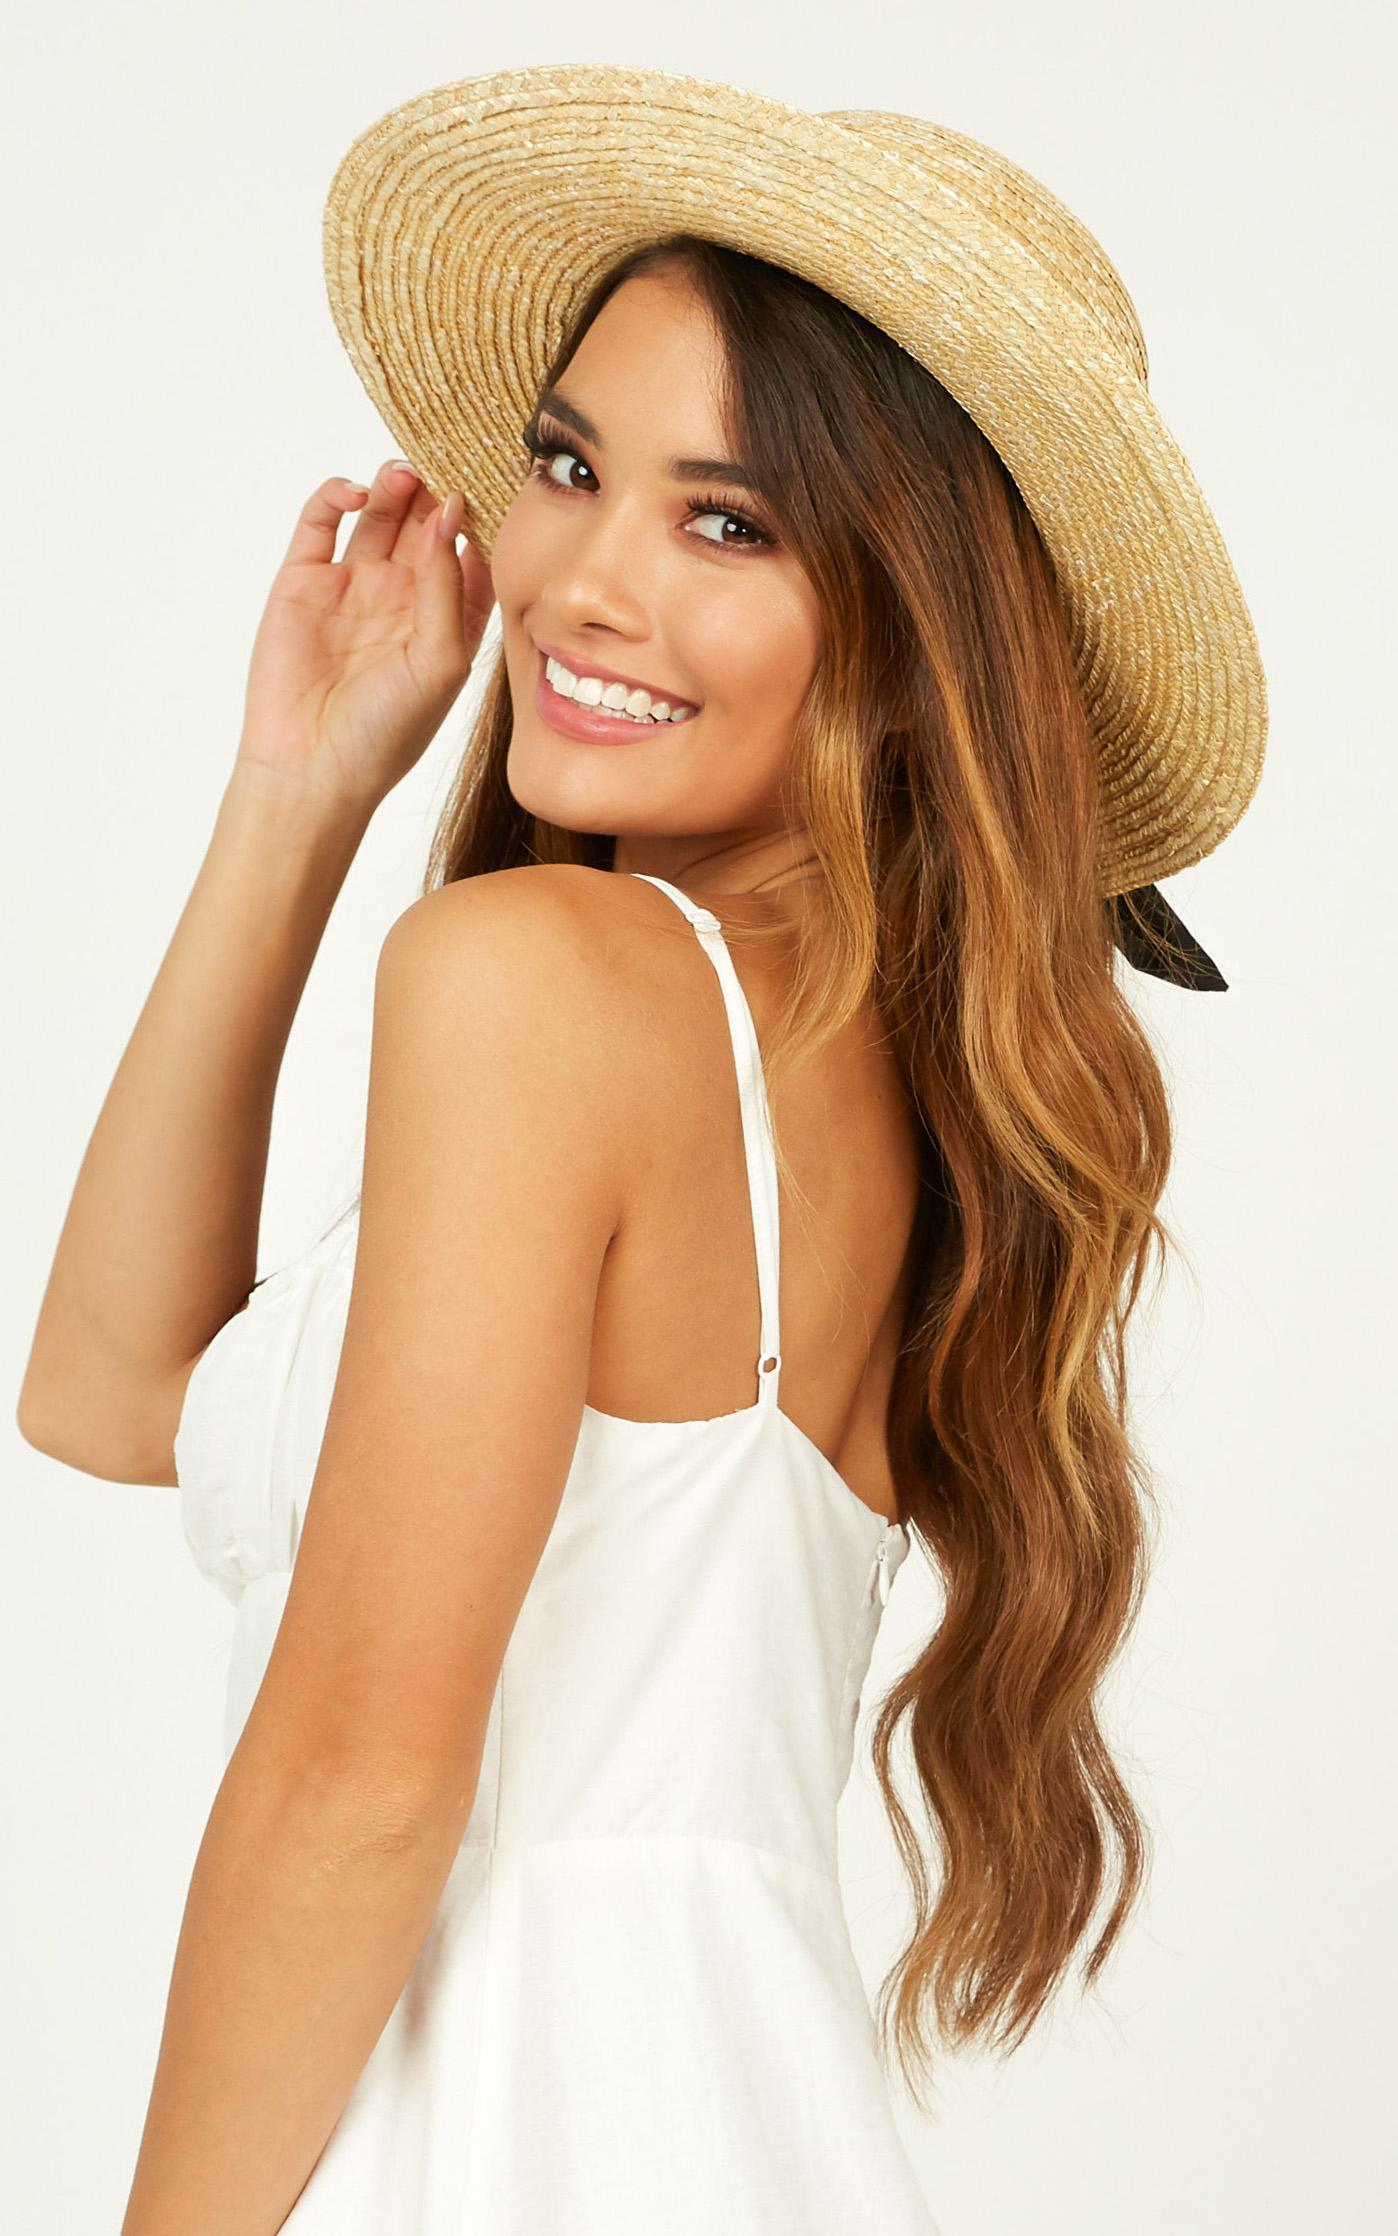 Sail Away hat in navy and natural, BRN2, hi-res image number null